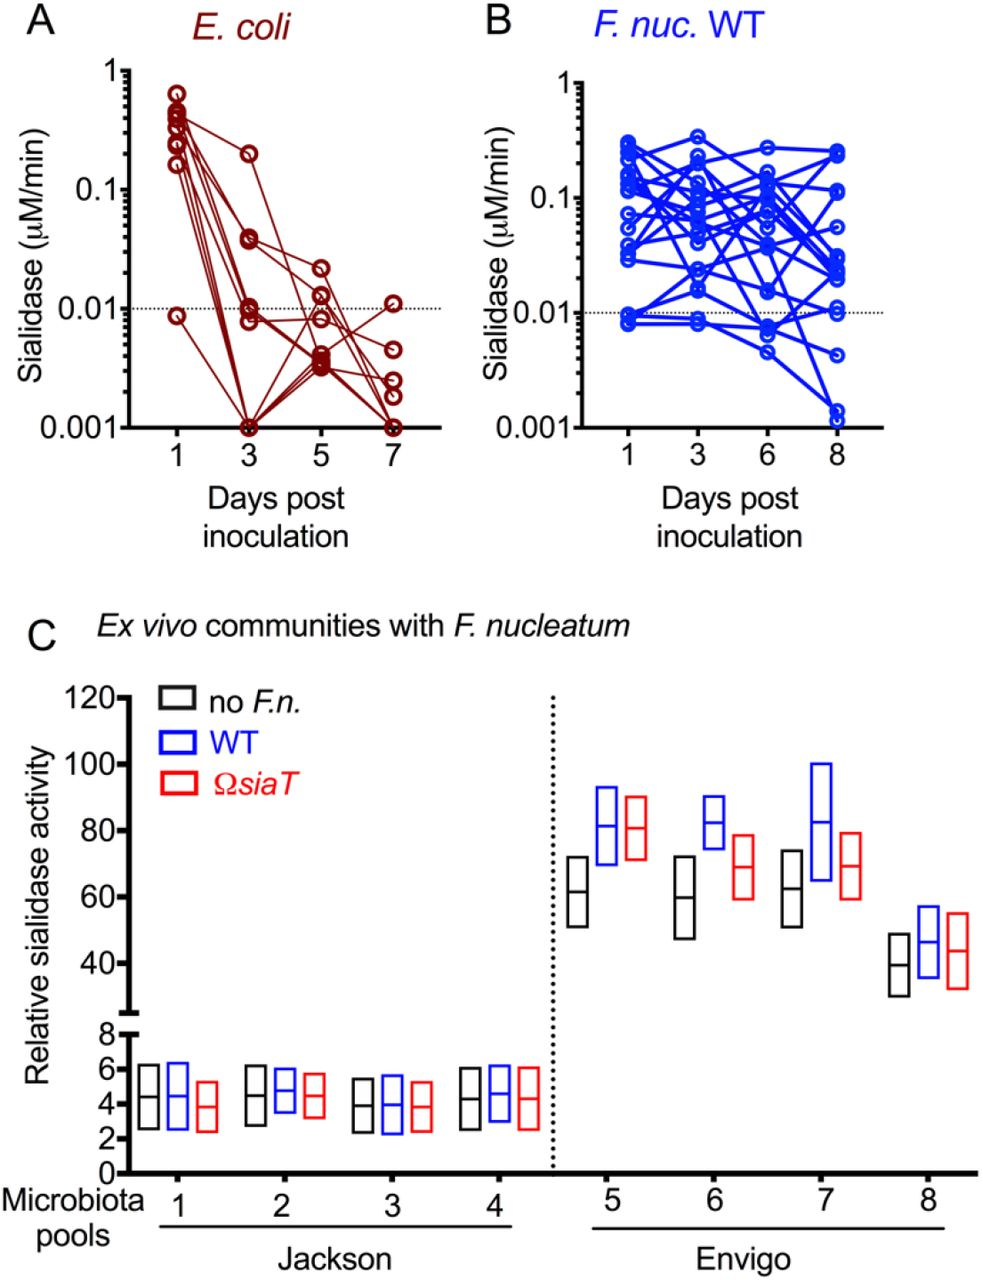 Vaginal sialidase activity in E. coli and F. nucleatum inoculated mice, and in vaginal microbiota pools of Jackson and Envigo mice, related to Figure 6 (A-B) Sialidase activity in vaginal washes from individual animals purchased from Envigo, estrogenized, and inoculated with E. coli , or F. nucleatum from 1 to 8 dpi. (C) Sialidase activity (after estrogenization) in vaginal wash pooled specimens (1 microbiota pool = 1 cage = 5 mice) from Jackson and Envigo mice, cultured with or without F. nucleatum (WT or ΩsiaT ). No sialidase activity was observed in cultured vaginal microbial communities from Jackson mice, both with and without F. nucleatum . Data shown here is combined from 2 independent experiments.